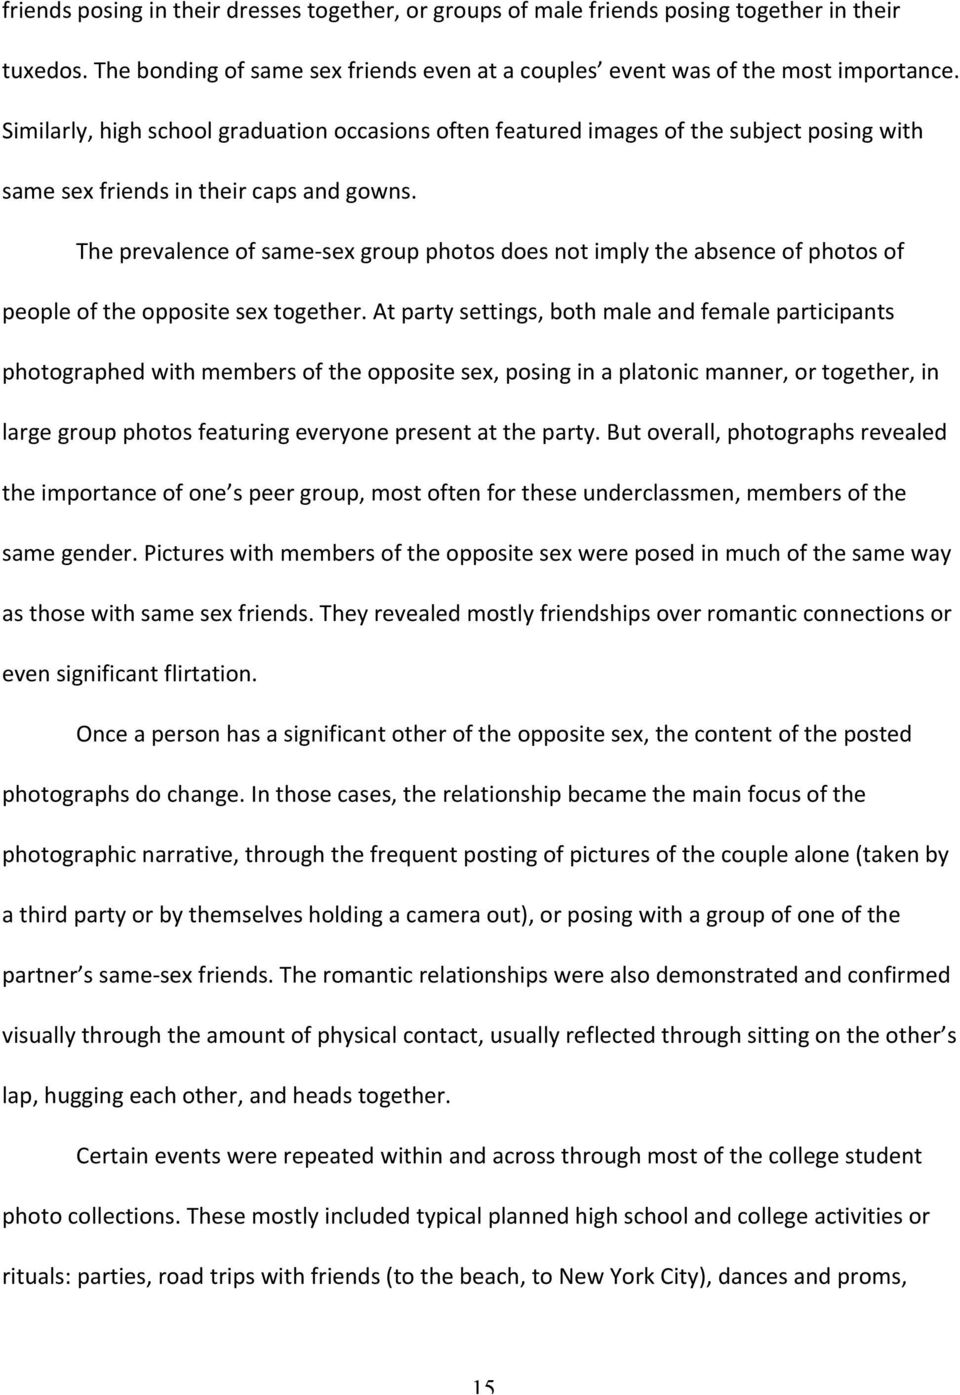 The prevalence of same sex group photos does not imply the absence of photos of people of the opposite sex together.